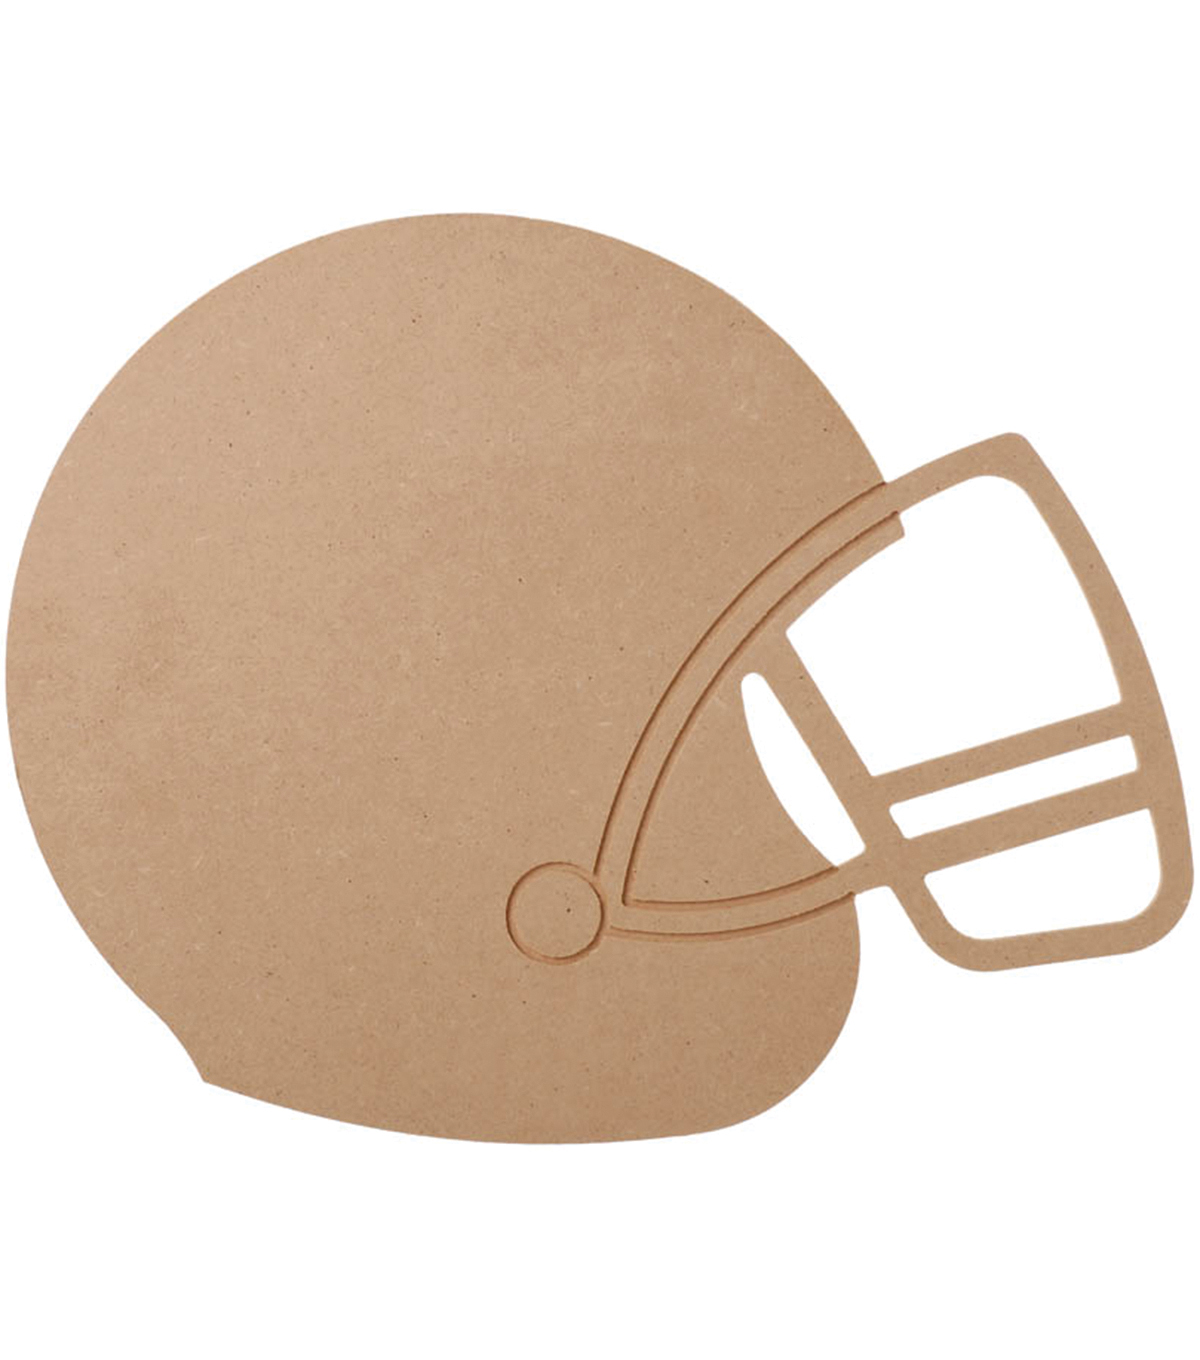 "MDF Wood Shape Football Helmet 9.1""x11.6"""